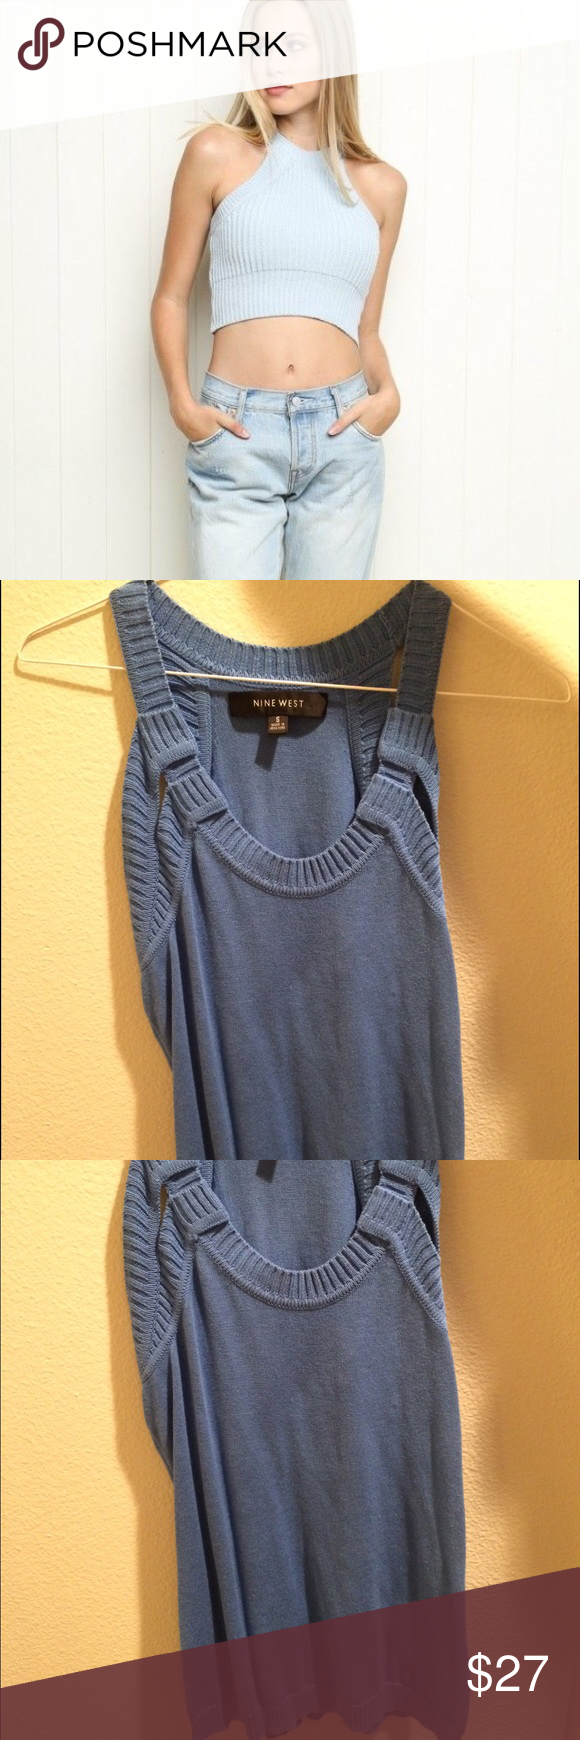 Blue Knit Tank ON MERC: $24 SHIPPED not listed brand but similar style but just a darker blue without a cropped fit. More comfortable than the cropped version in my opinion. Worn once new condition. Brandy Melville Tops Tank Tops